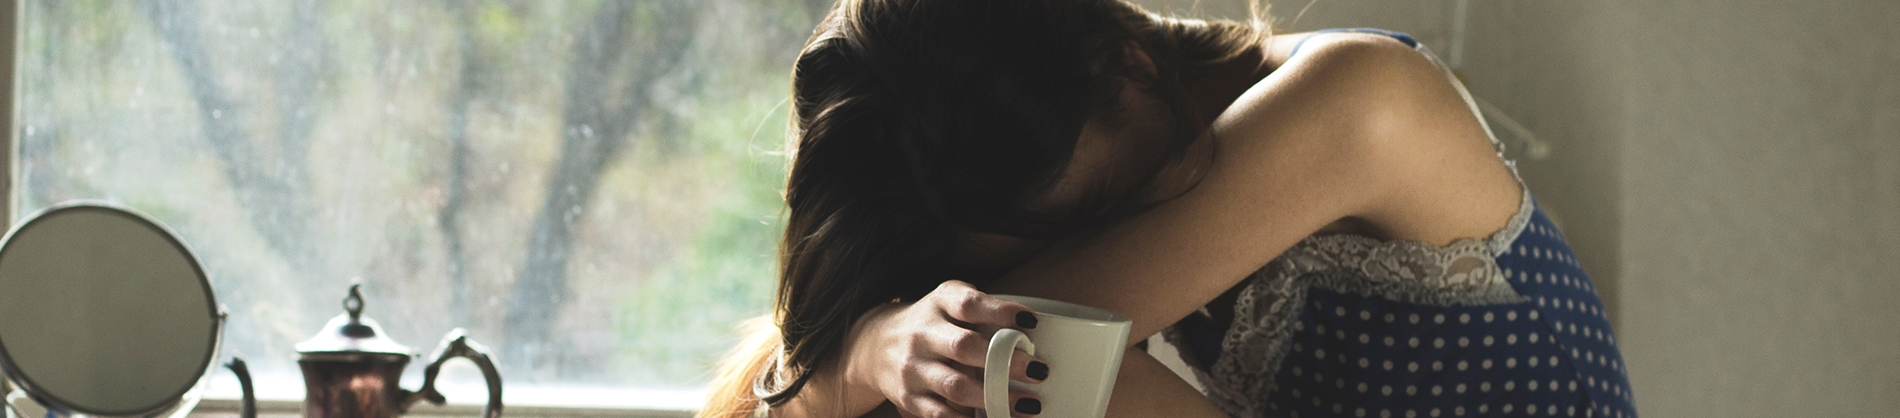 A women crying into her lap holding a mug